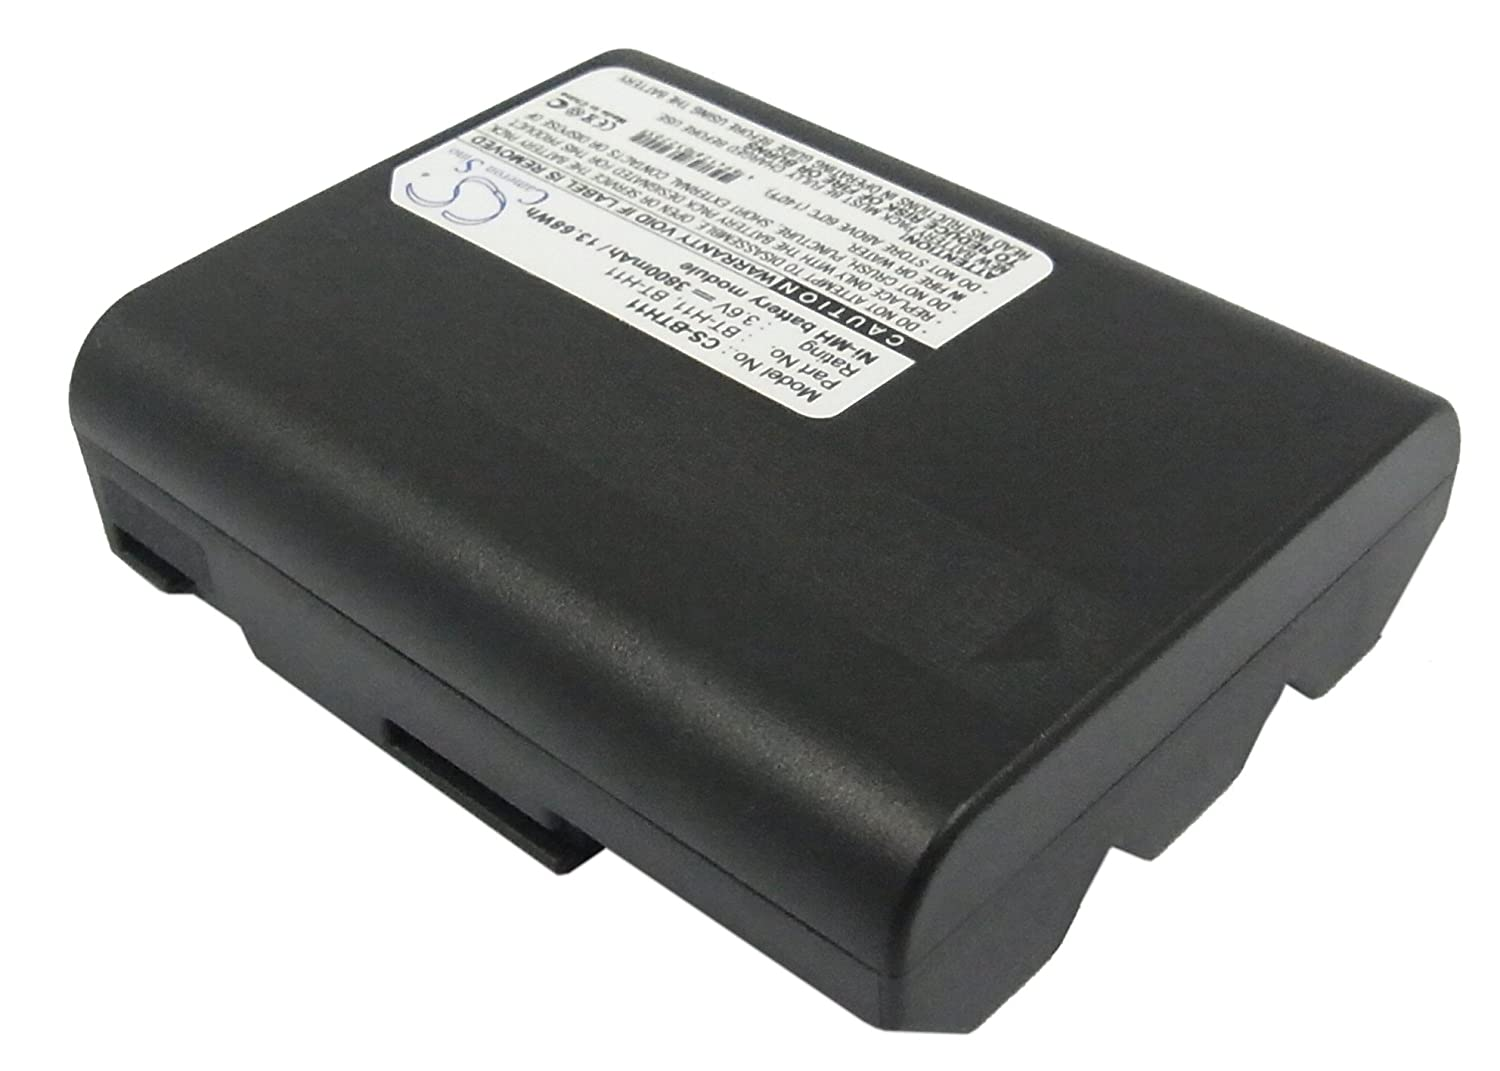 Cameron Sino Rechargeble Battery for Sharp vl-e37h   B01E0SE486